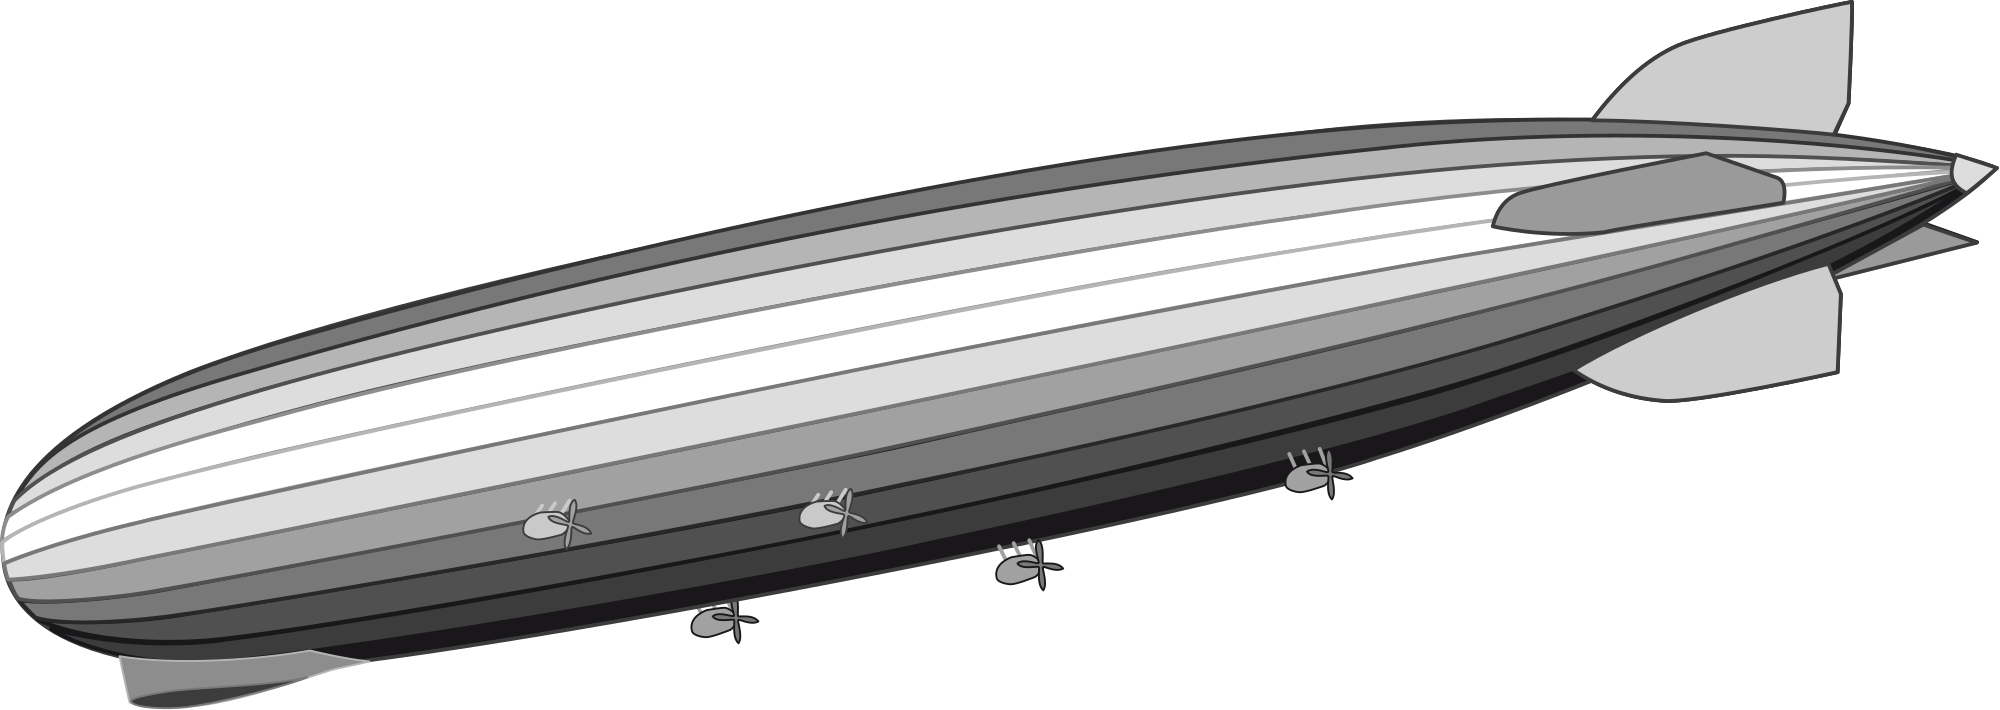 Zeppelin drawing airship. File lz svg wikimedia